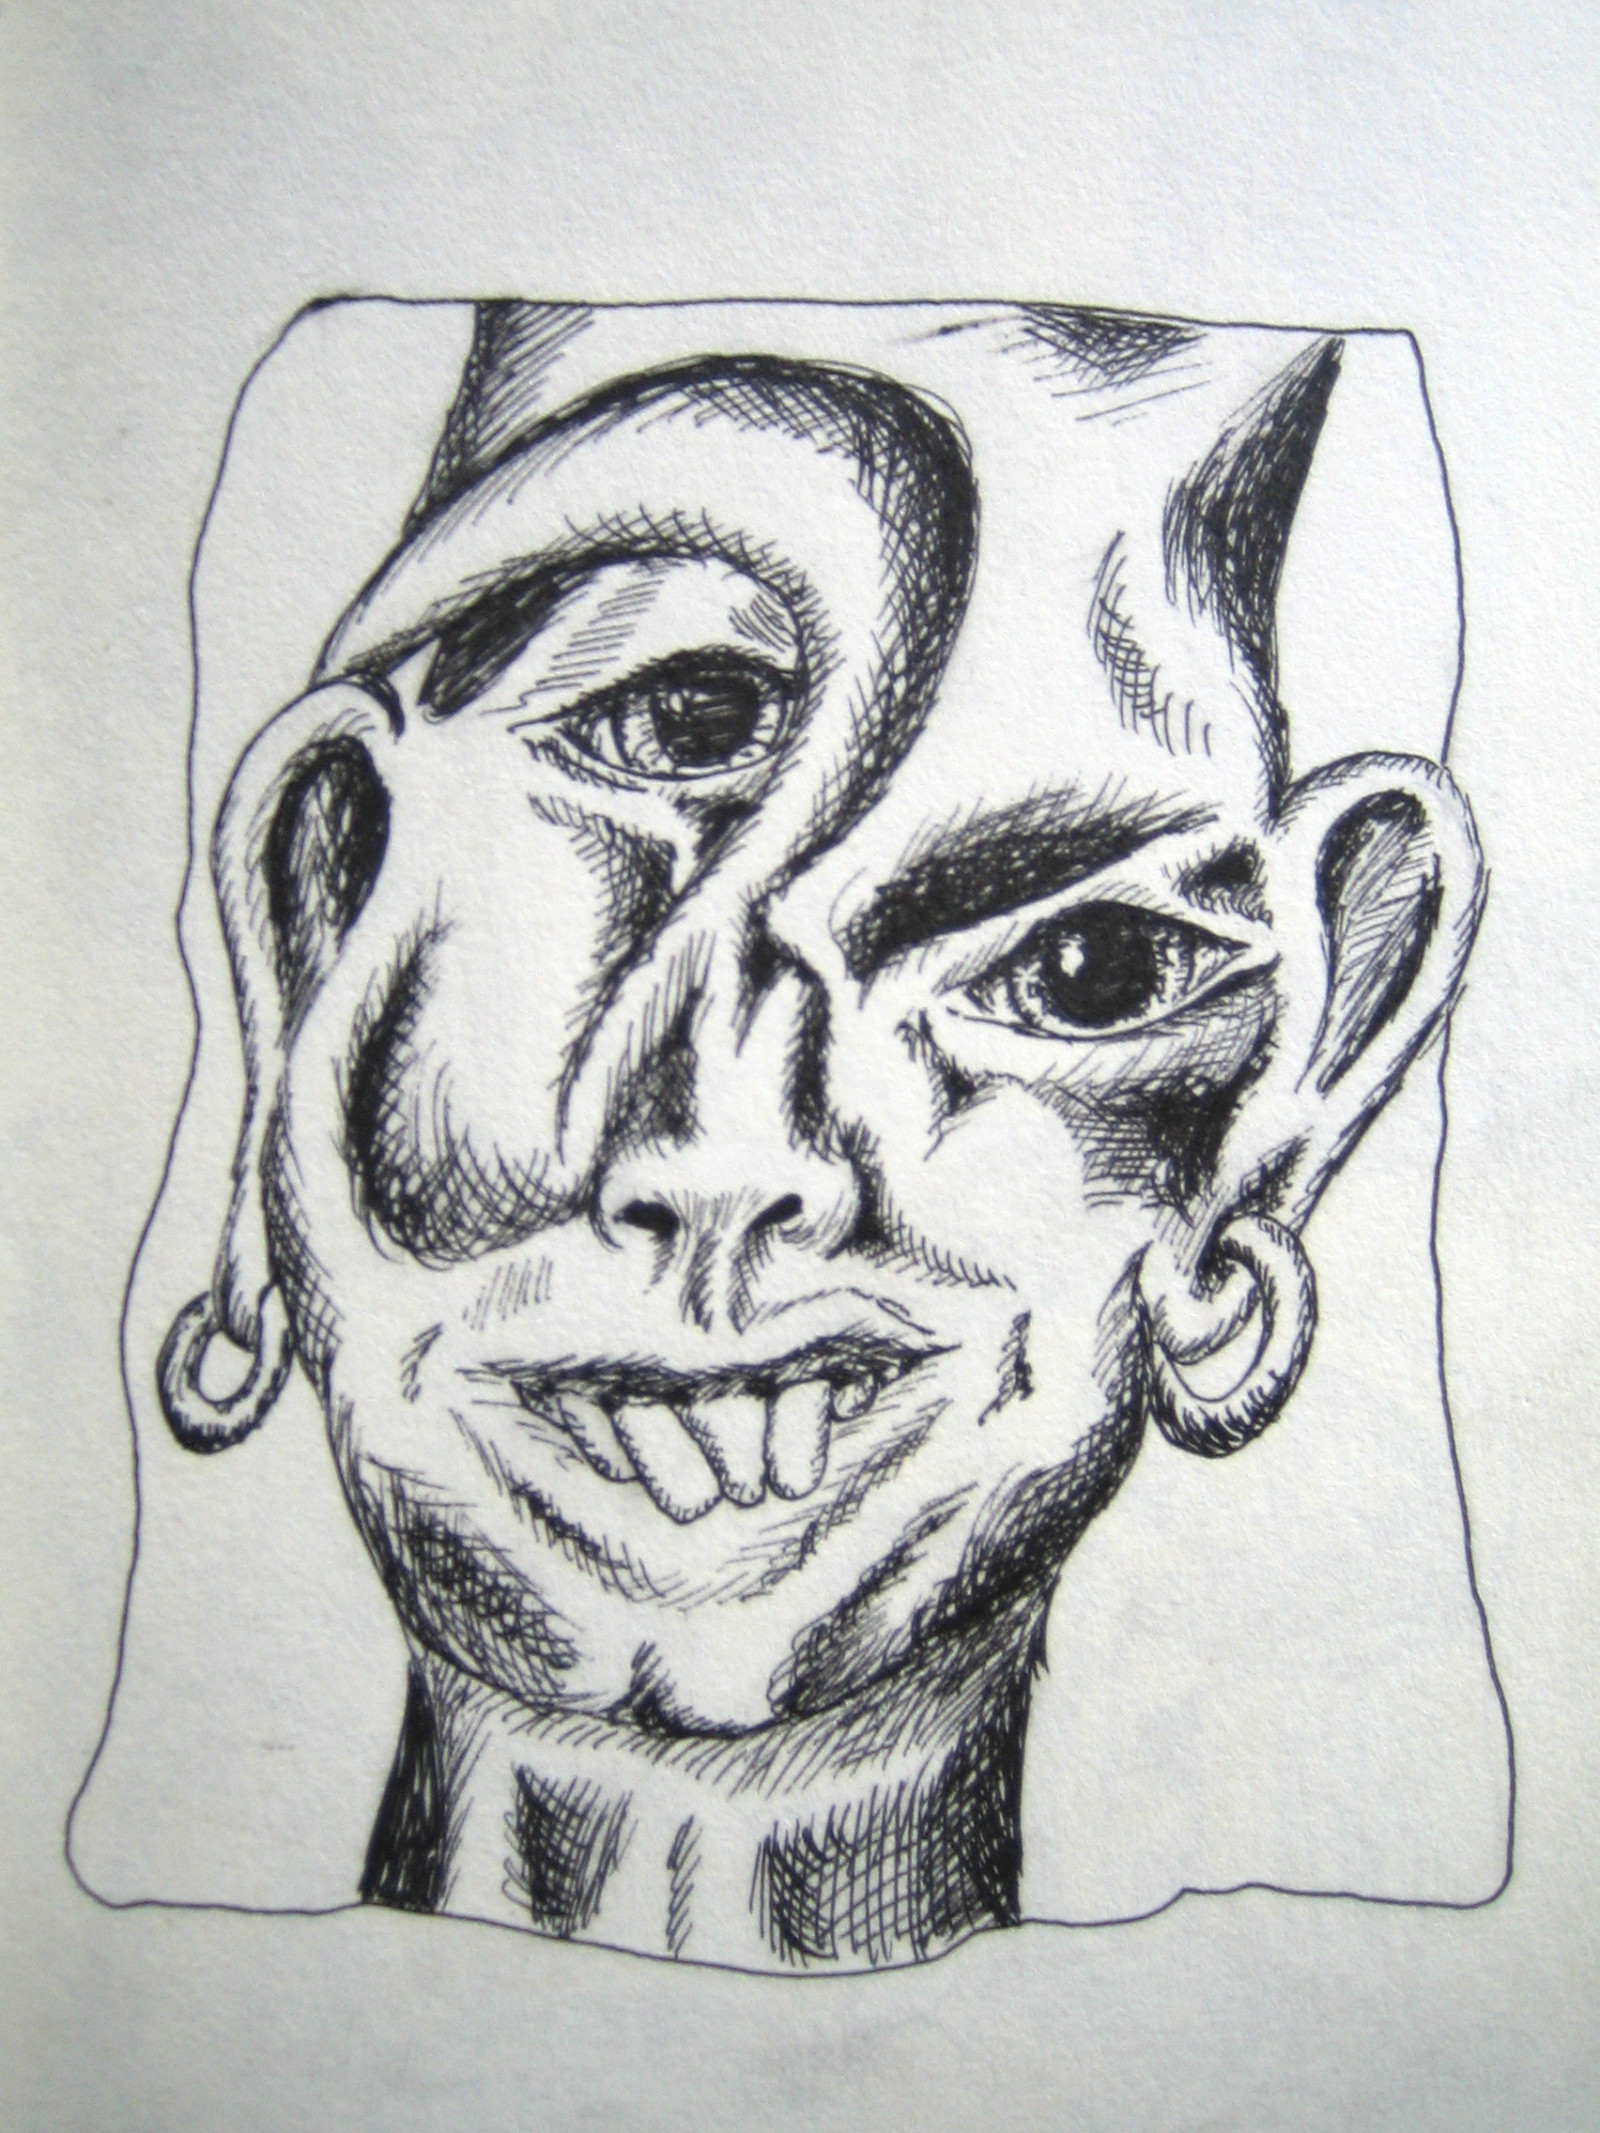 mirrow-face-black-and-white-drawing-with-pen